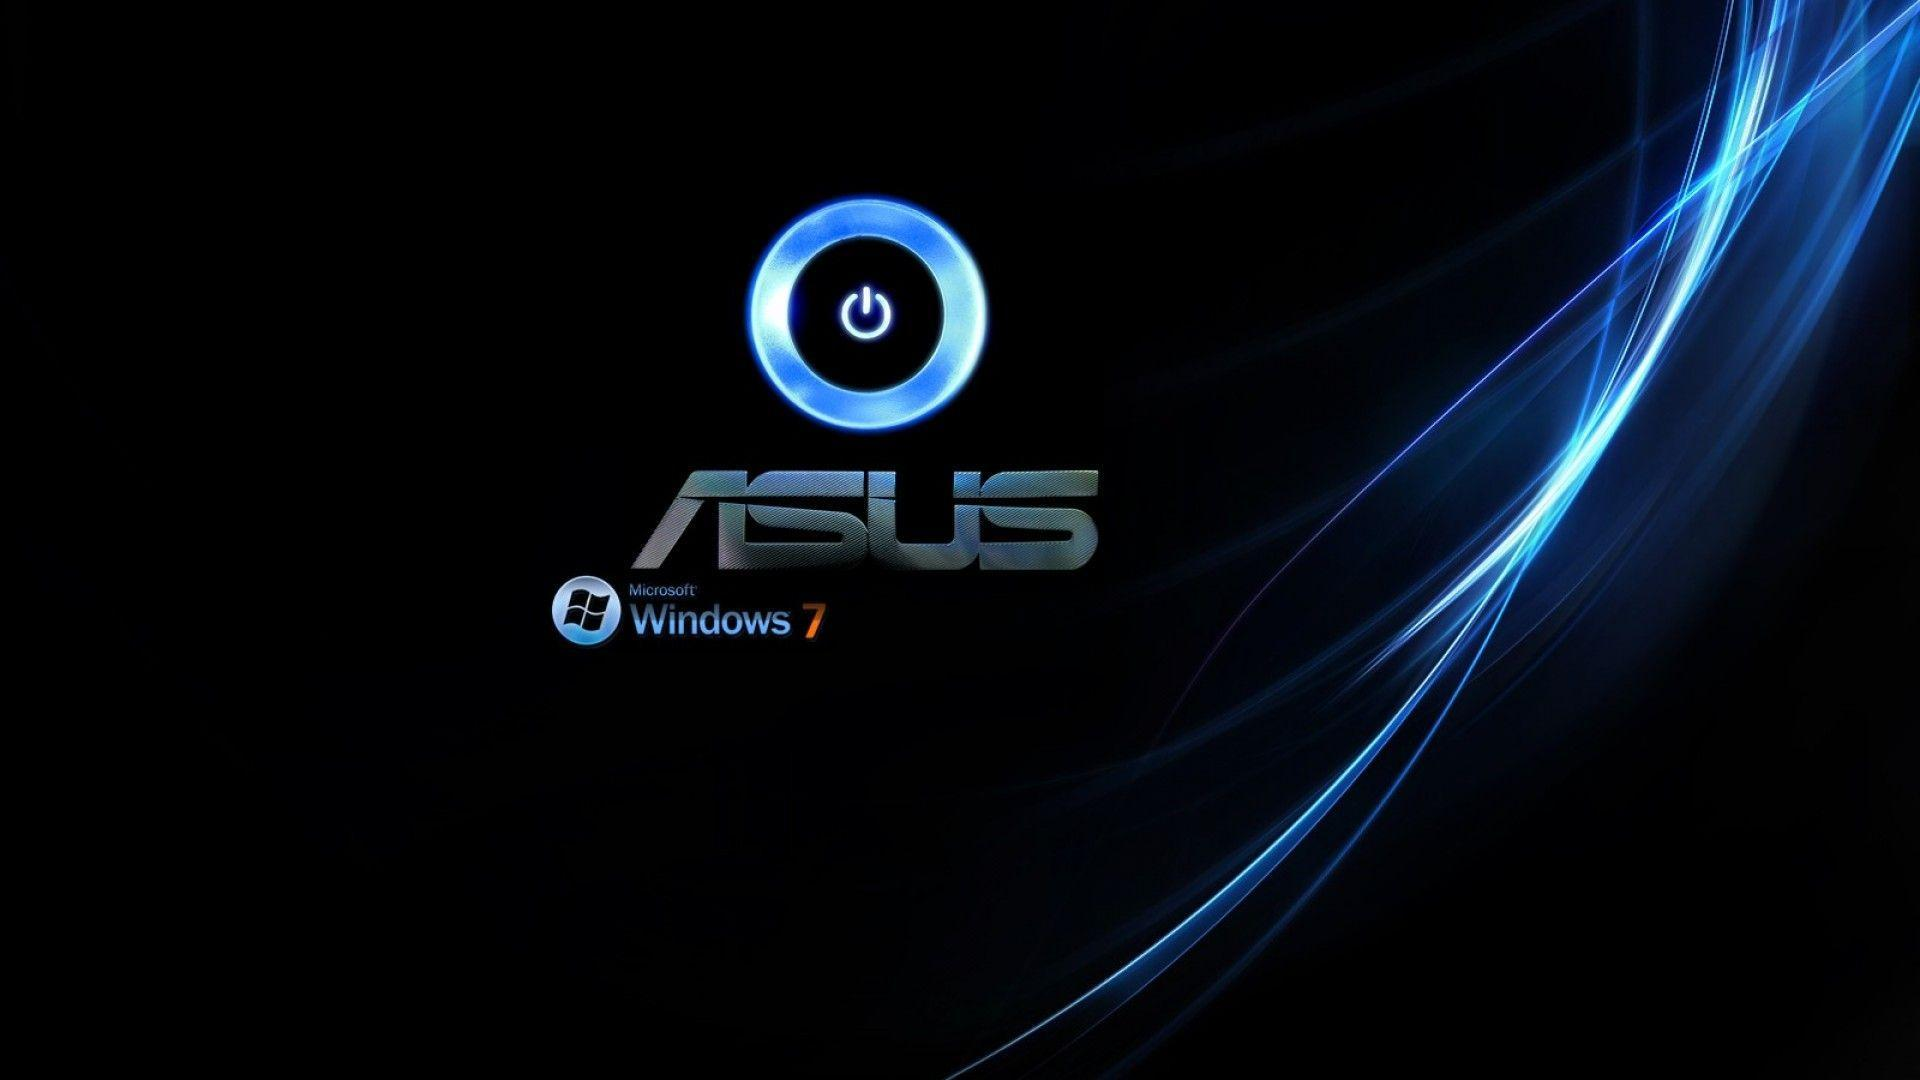 asus desktop backgrounds - wallpaper cave